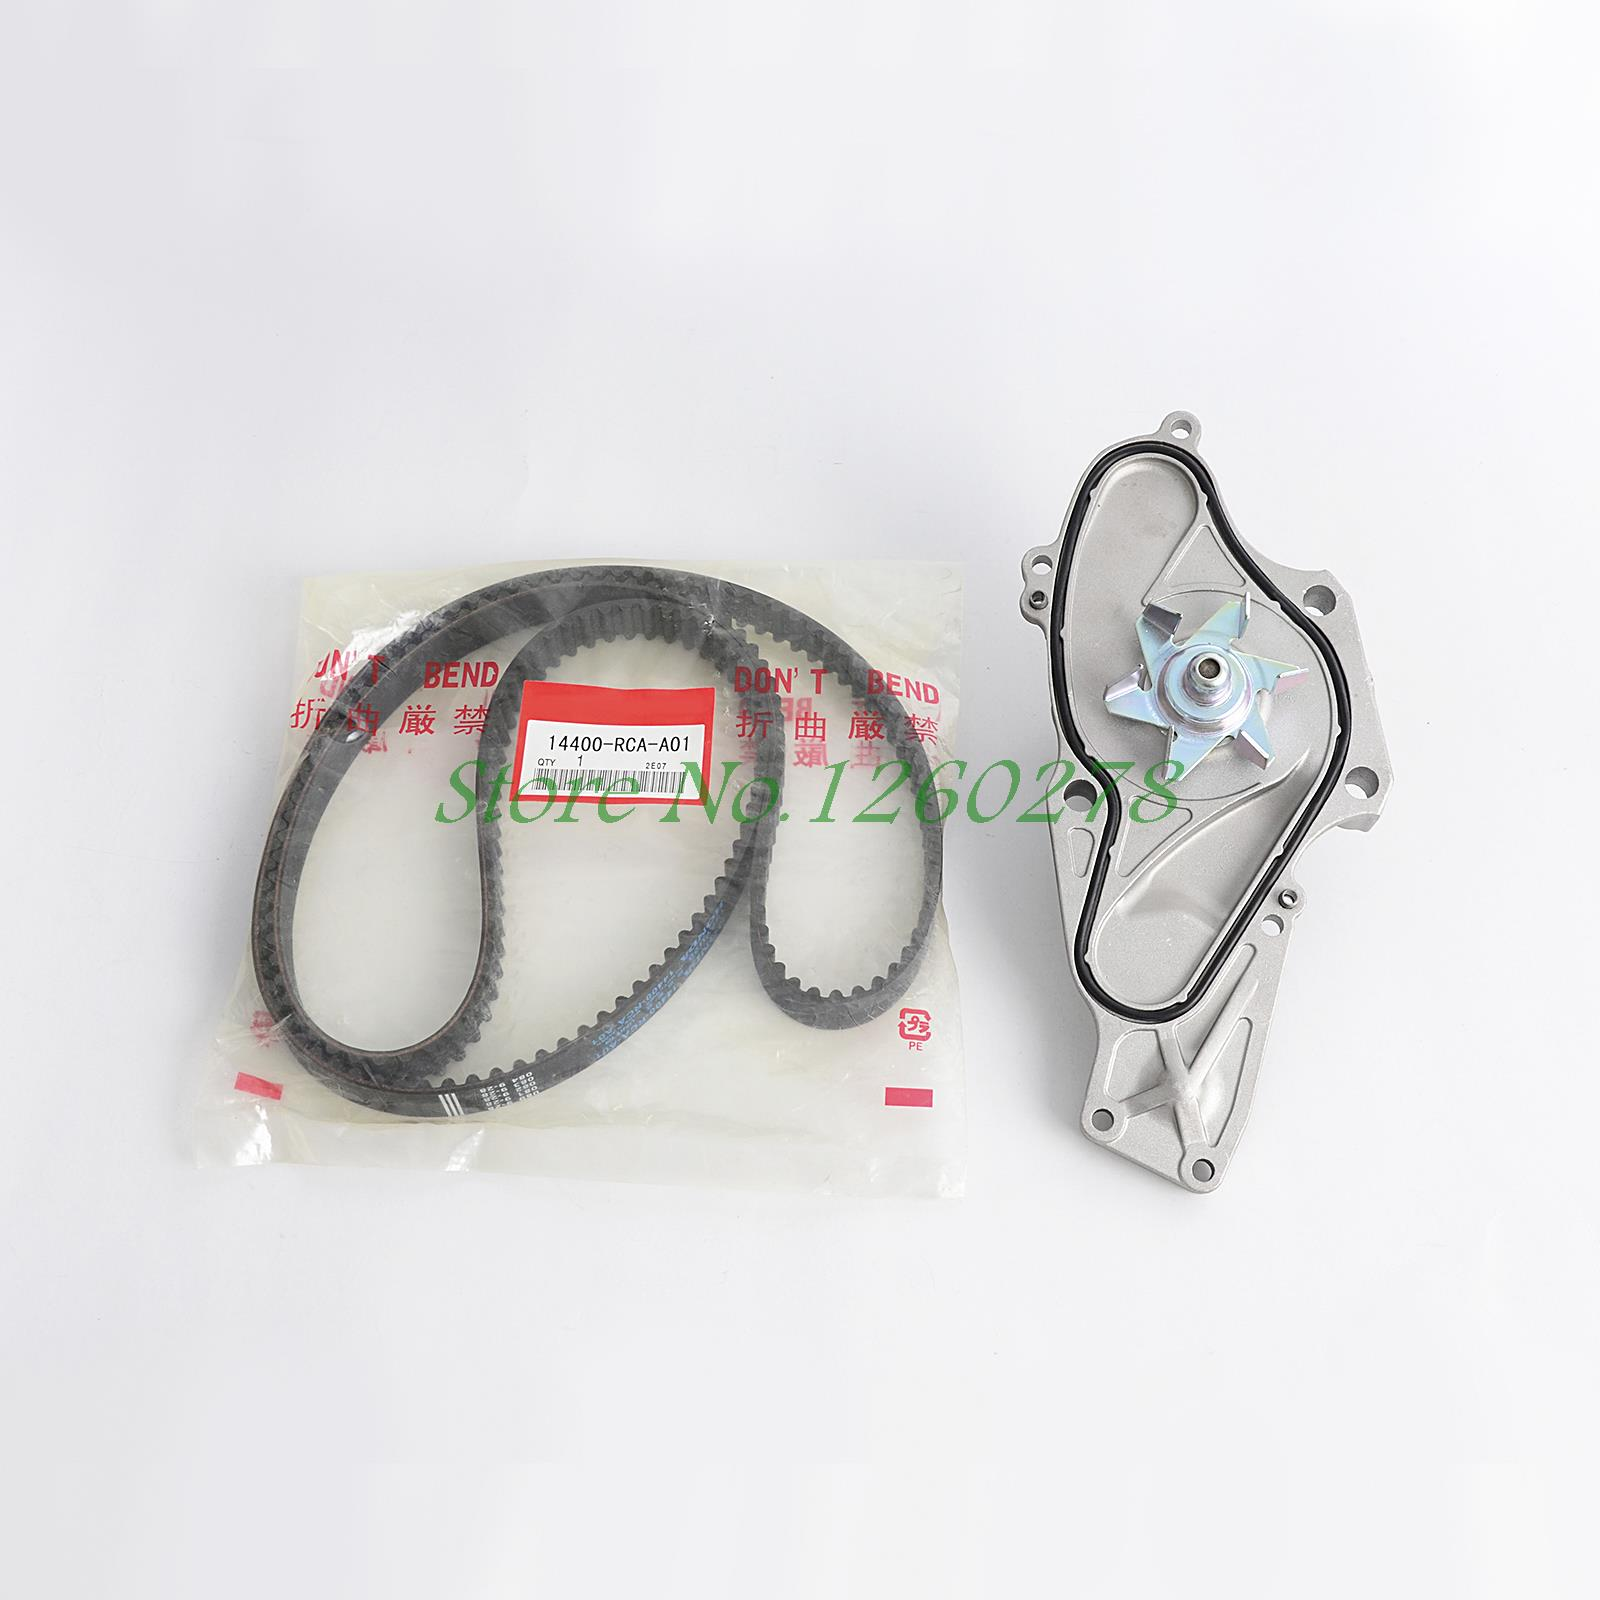 GENUINE/OEM TIMING BELT & WATER PUMP KIT FOR Honda Odyssey